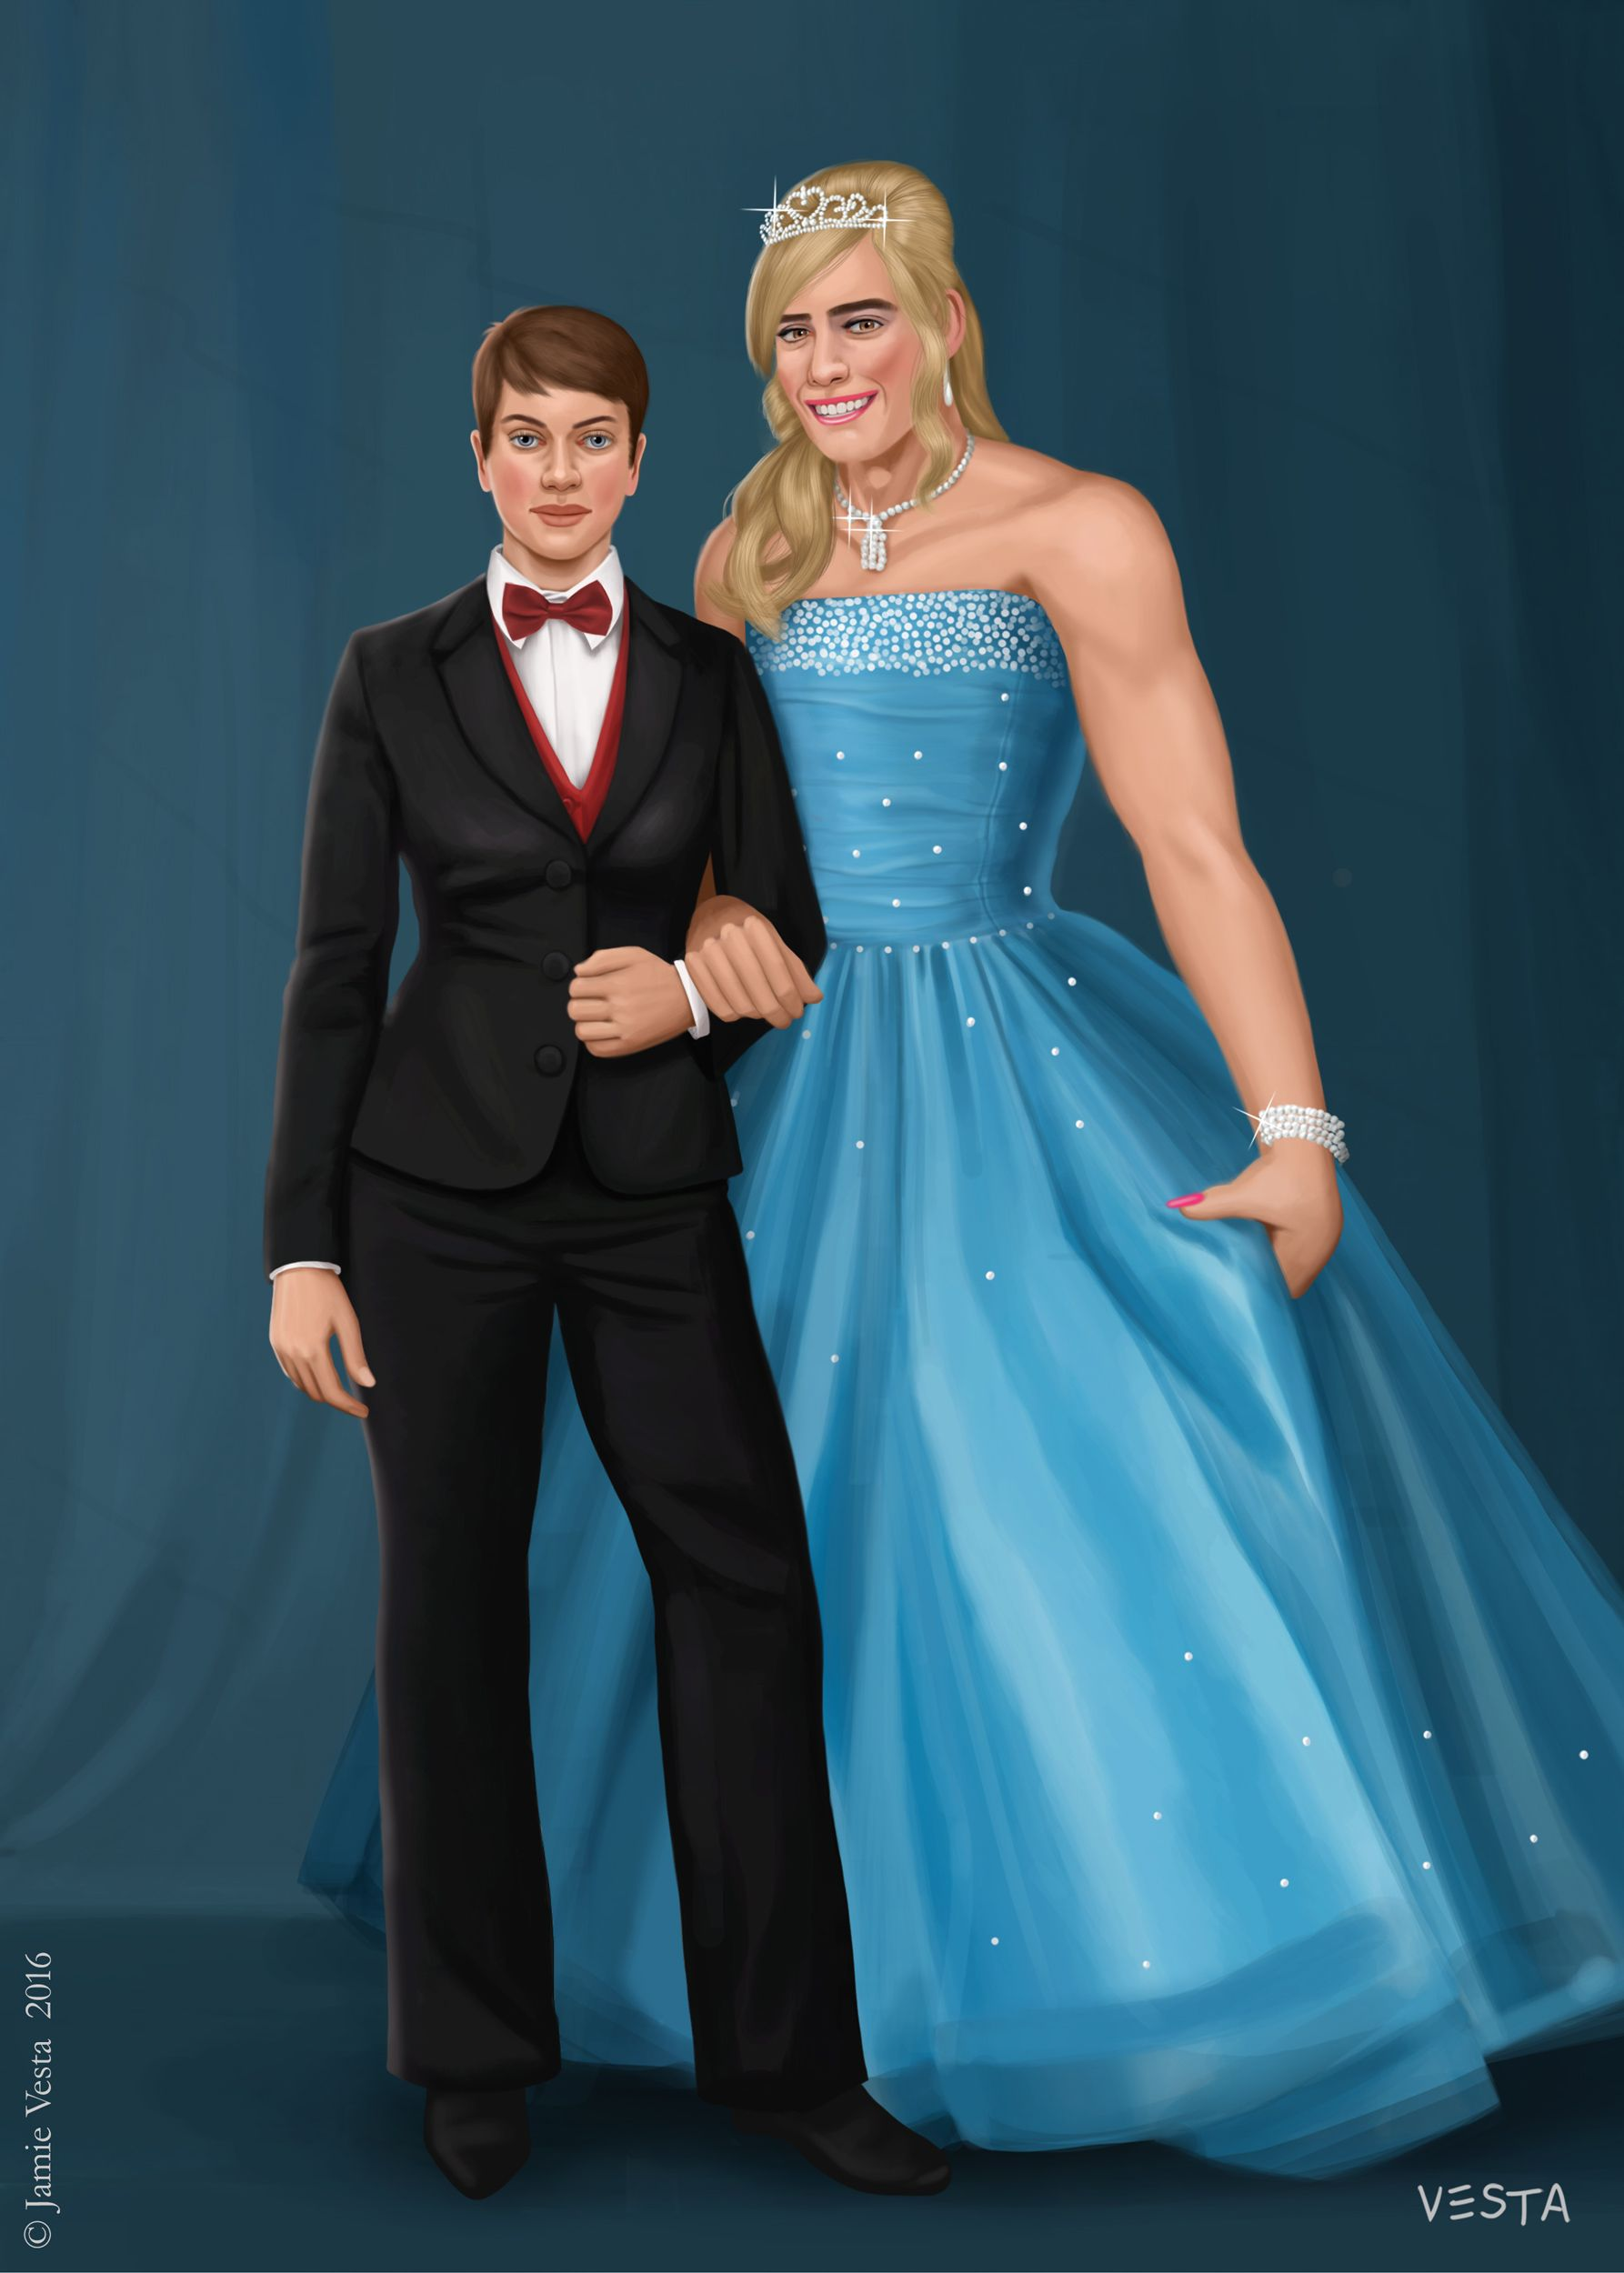 Prom couple. Girl and her date, posing for a photo before prom ...